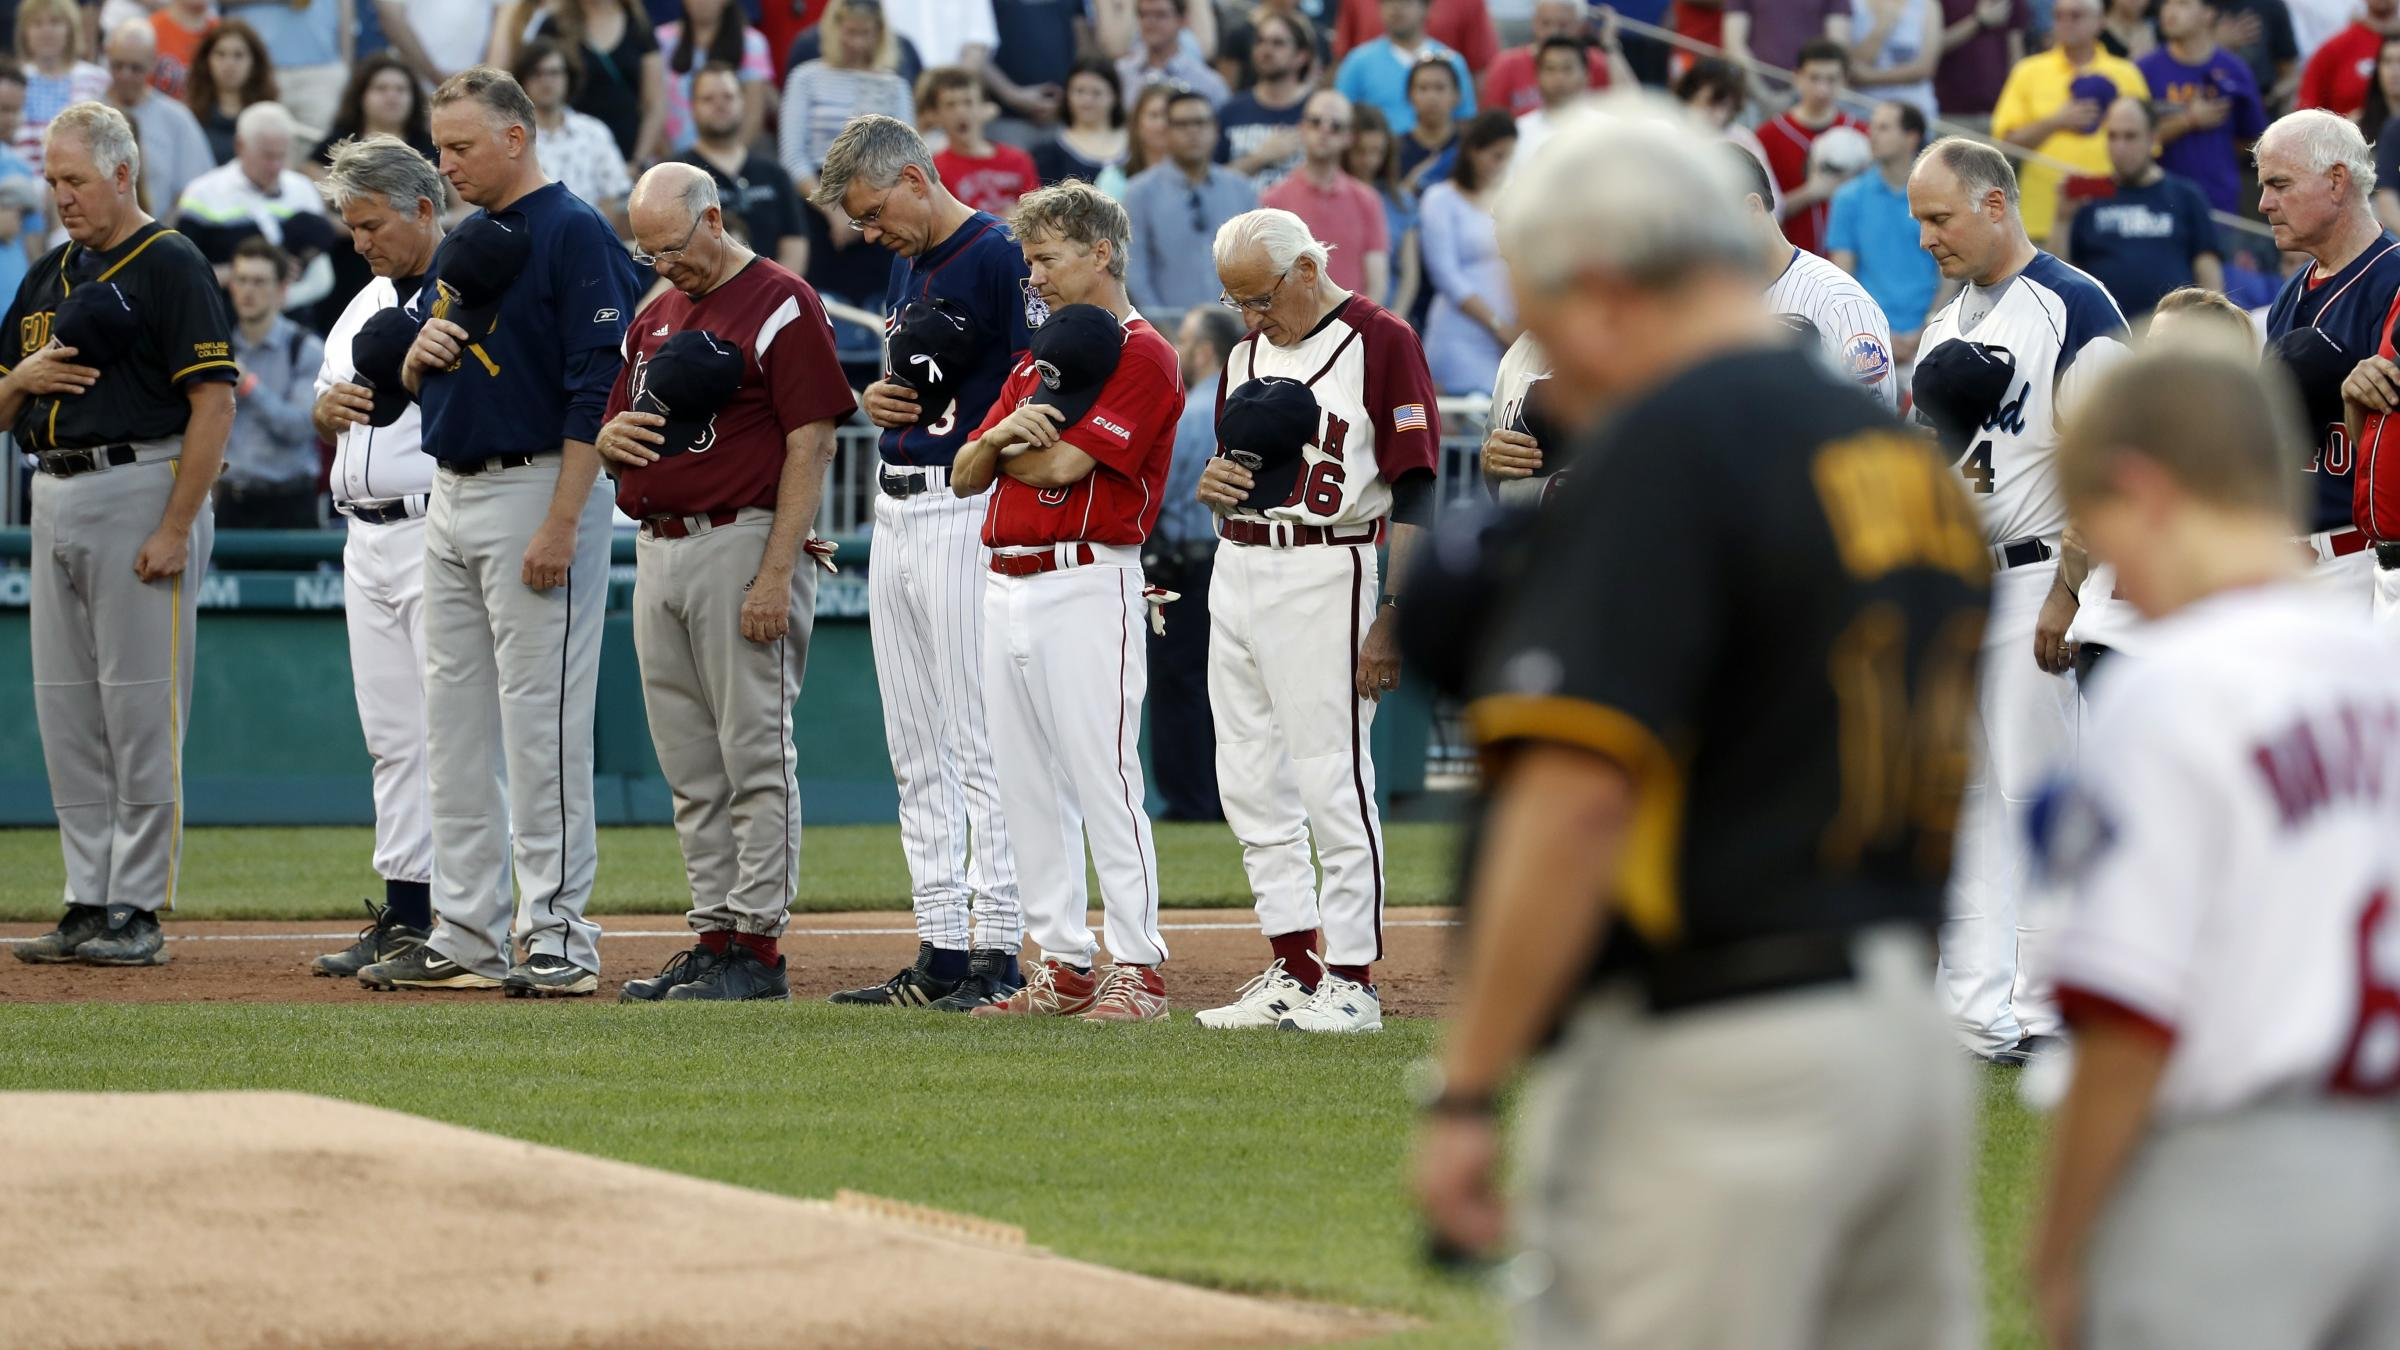 US Lawmaker Shot at Baseball Practice Remains in Critical Condition